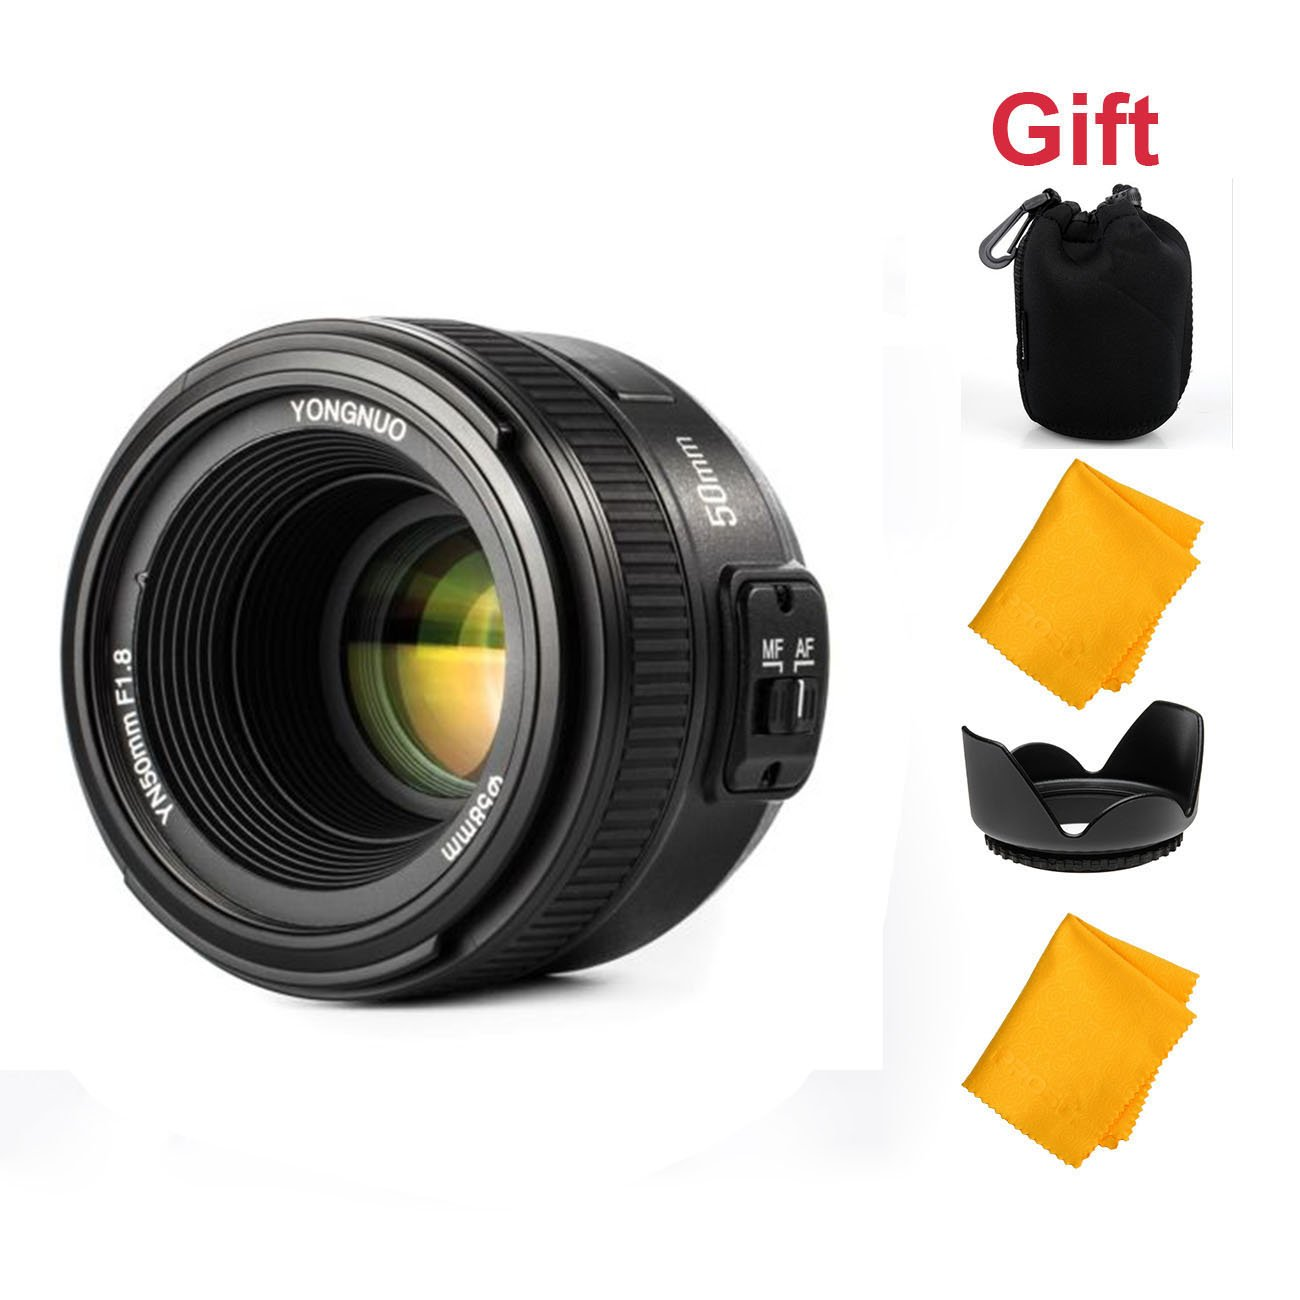 YONGNUO 50mm F1.8 1:1.8 Standard Prime Lens Large Aperture Auto Manual Focus AF MF for Nikon DSLR Camera